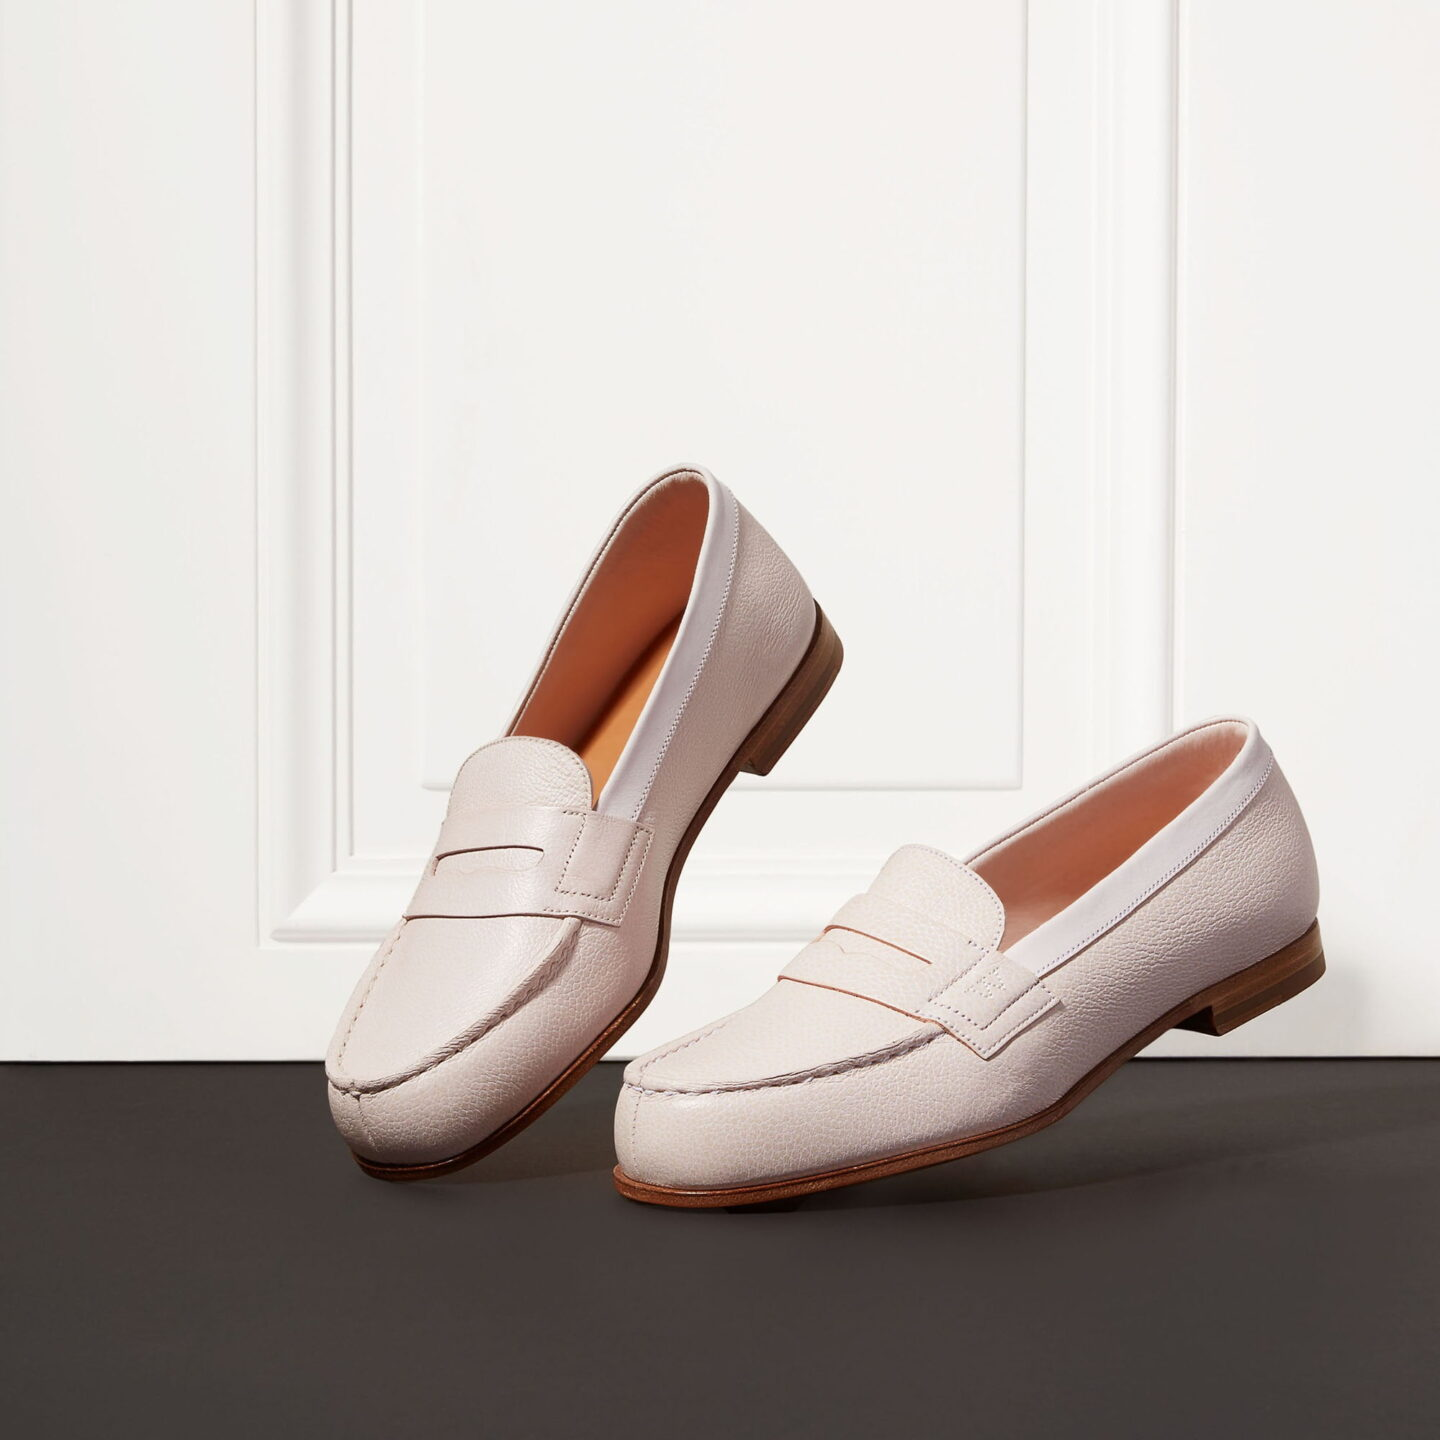 The 20 Affordable French Shoe Brands